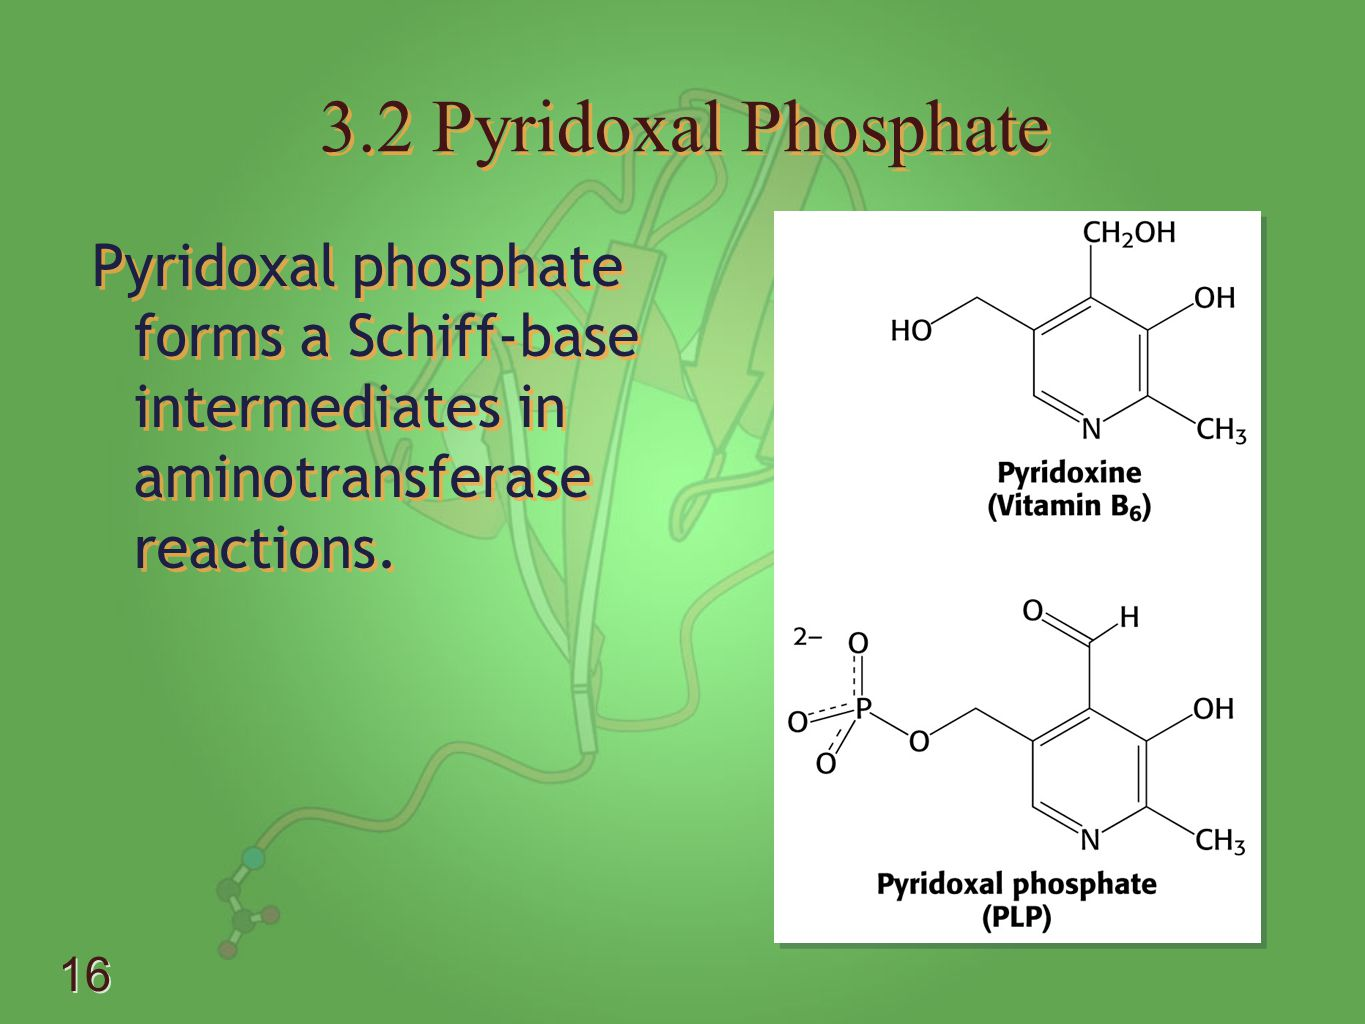 3.2 Pyridoxal Phosphate Pyridoxal phosphate forms a Schiff-base intermediates in aminotransferase reactions.